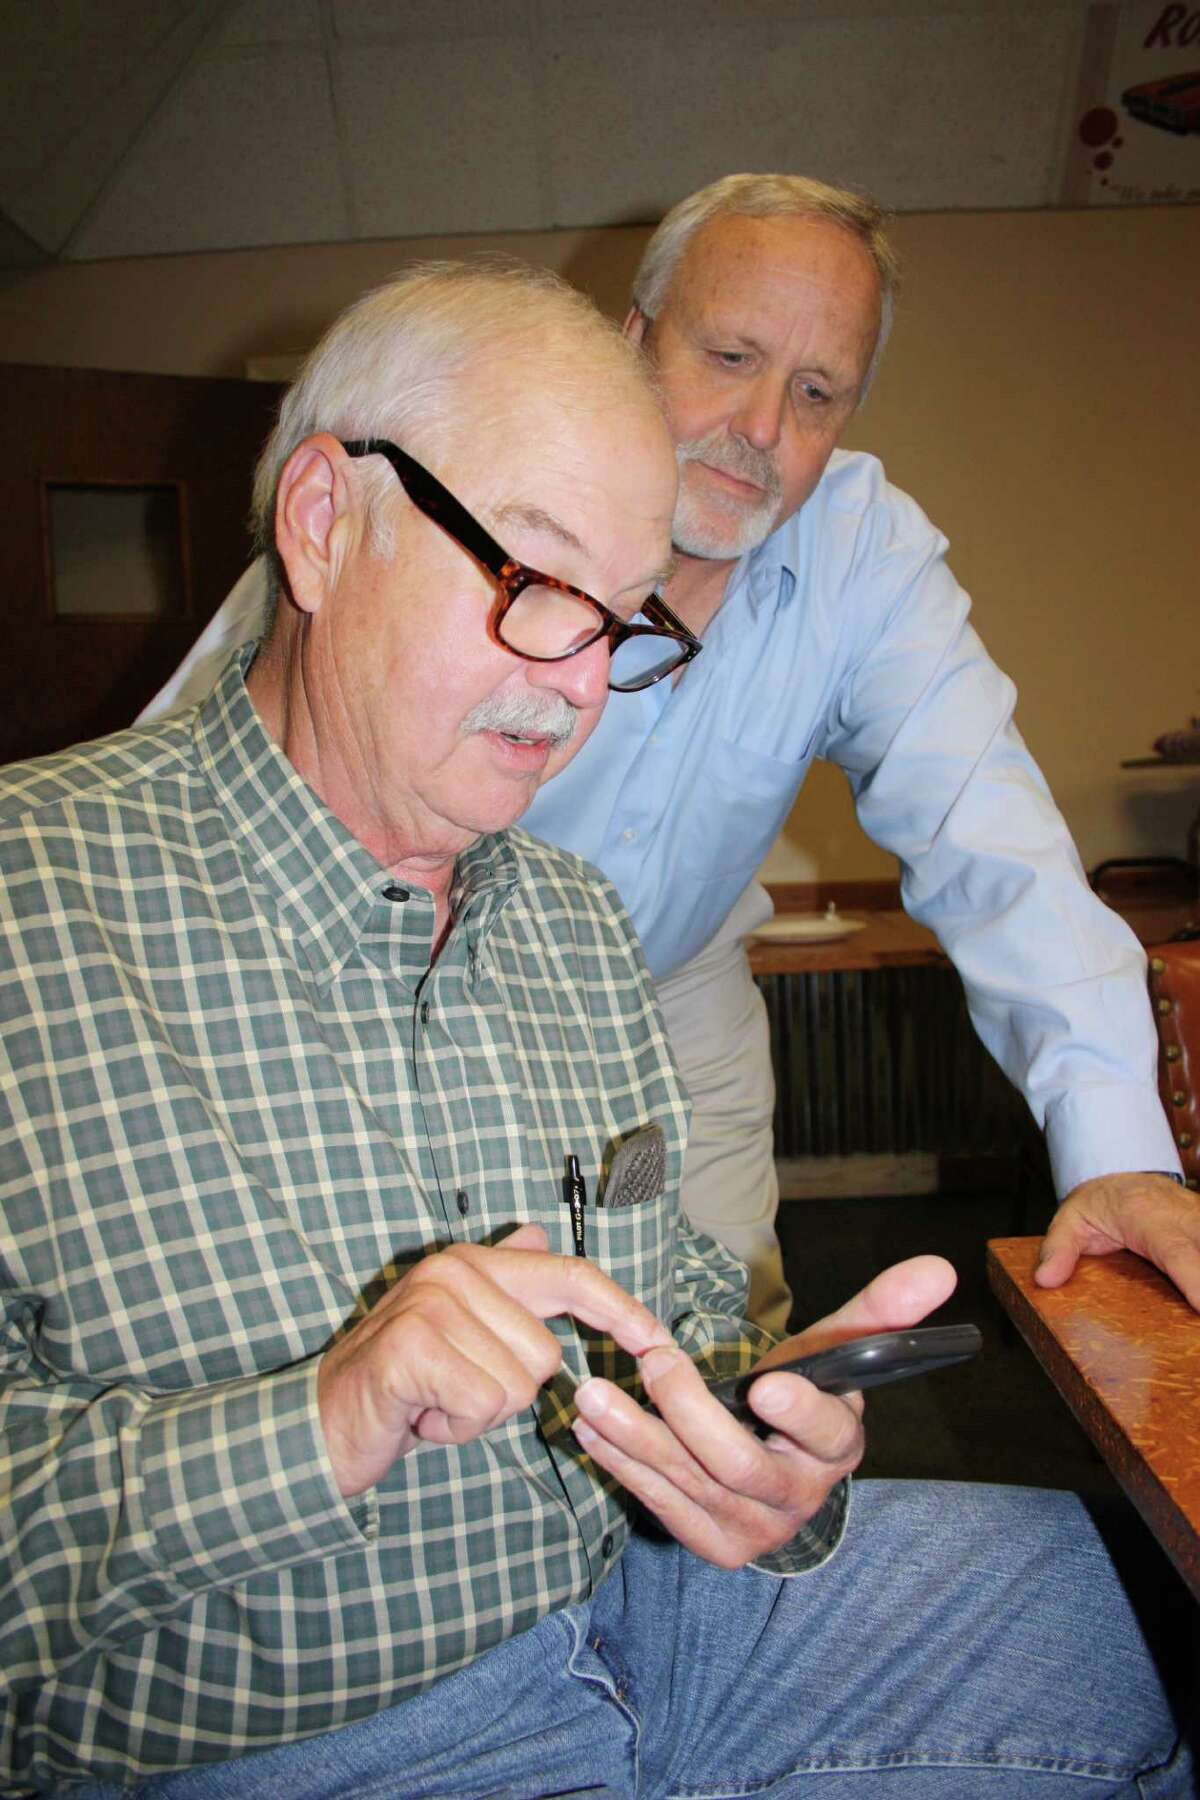 Liberty County Pct. 1 Commissioner Mike McCarty checks the latest election results on his phone while County Judge Jay Knight looks on. McCarty, a Republican, easily won reelection as he had no opposition in the Nov. 8 general election.